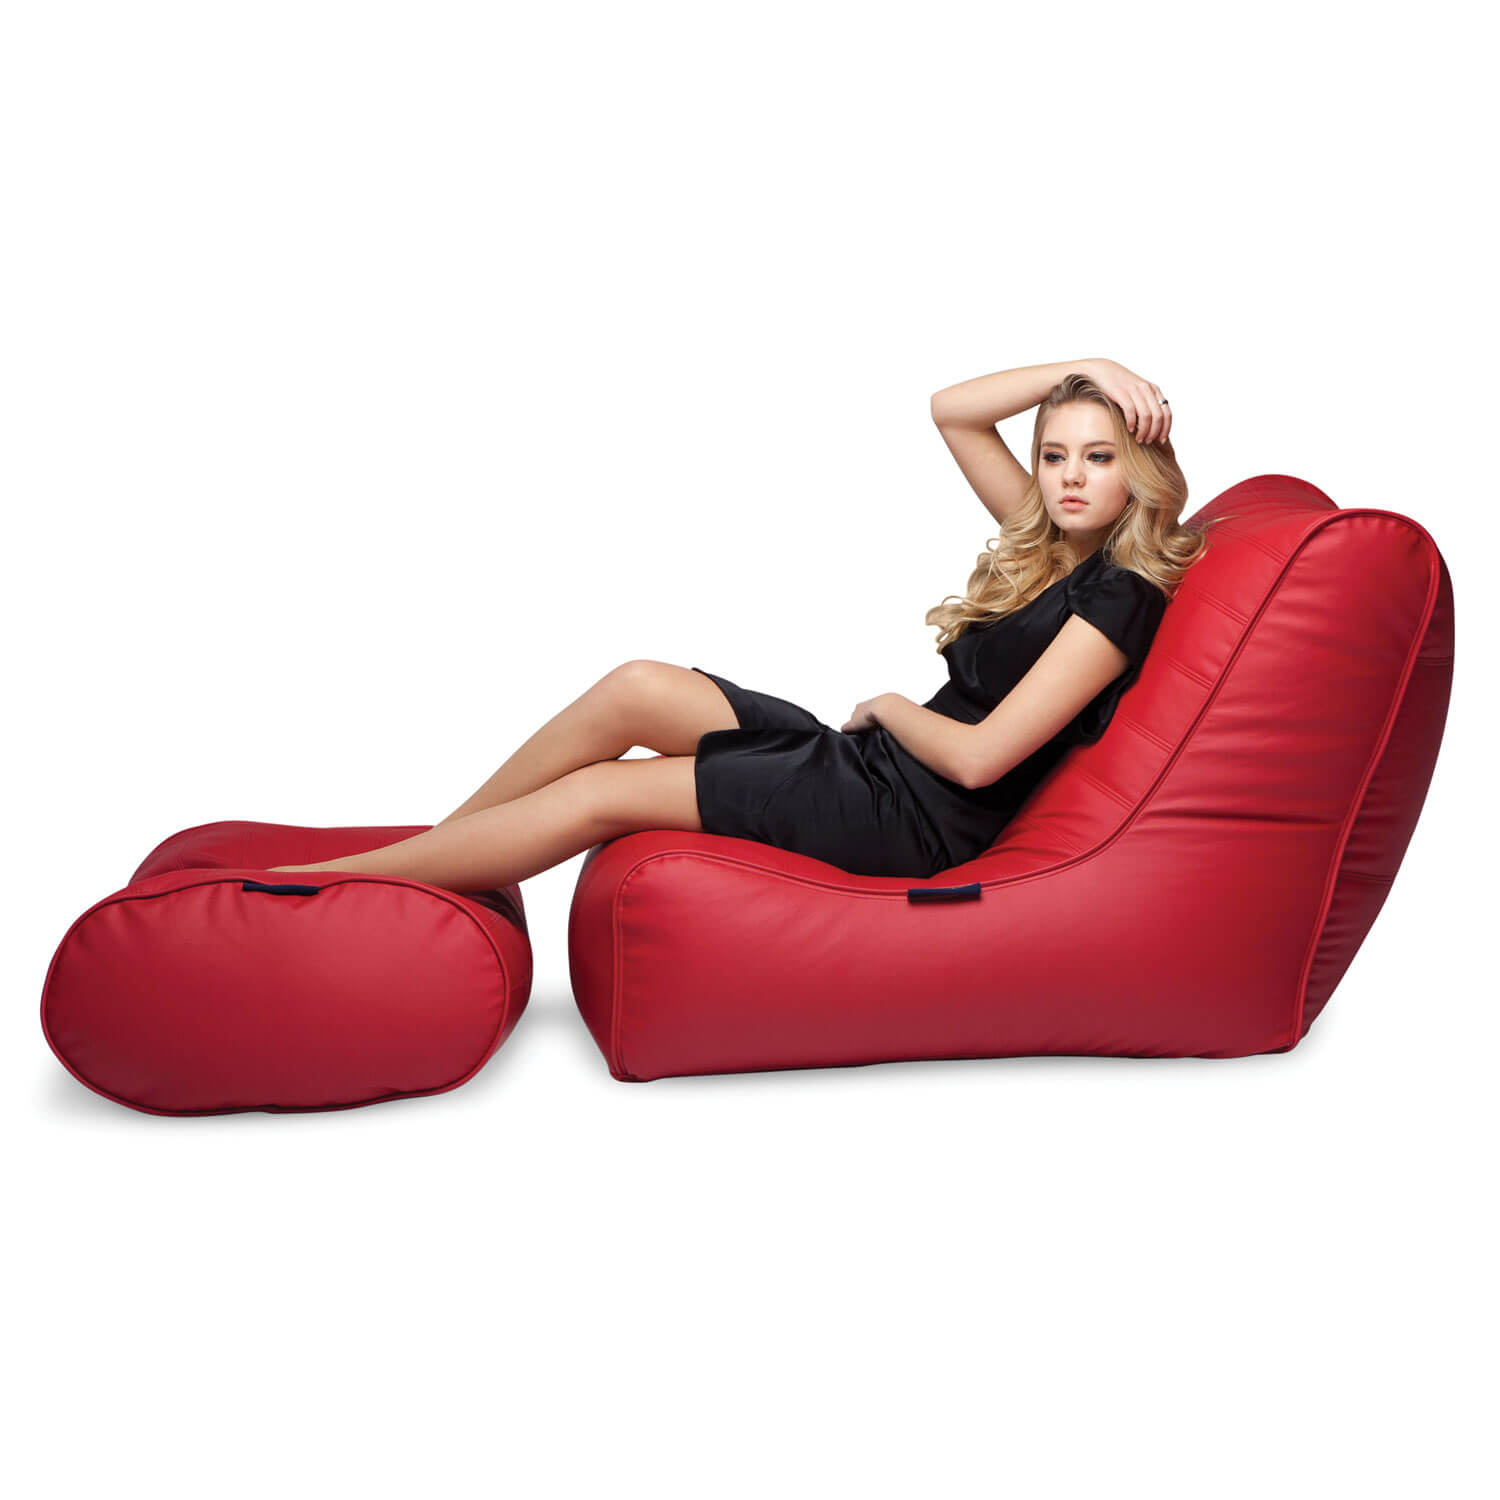 Red Leather Bean Bags Ambient Lounge